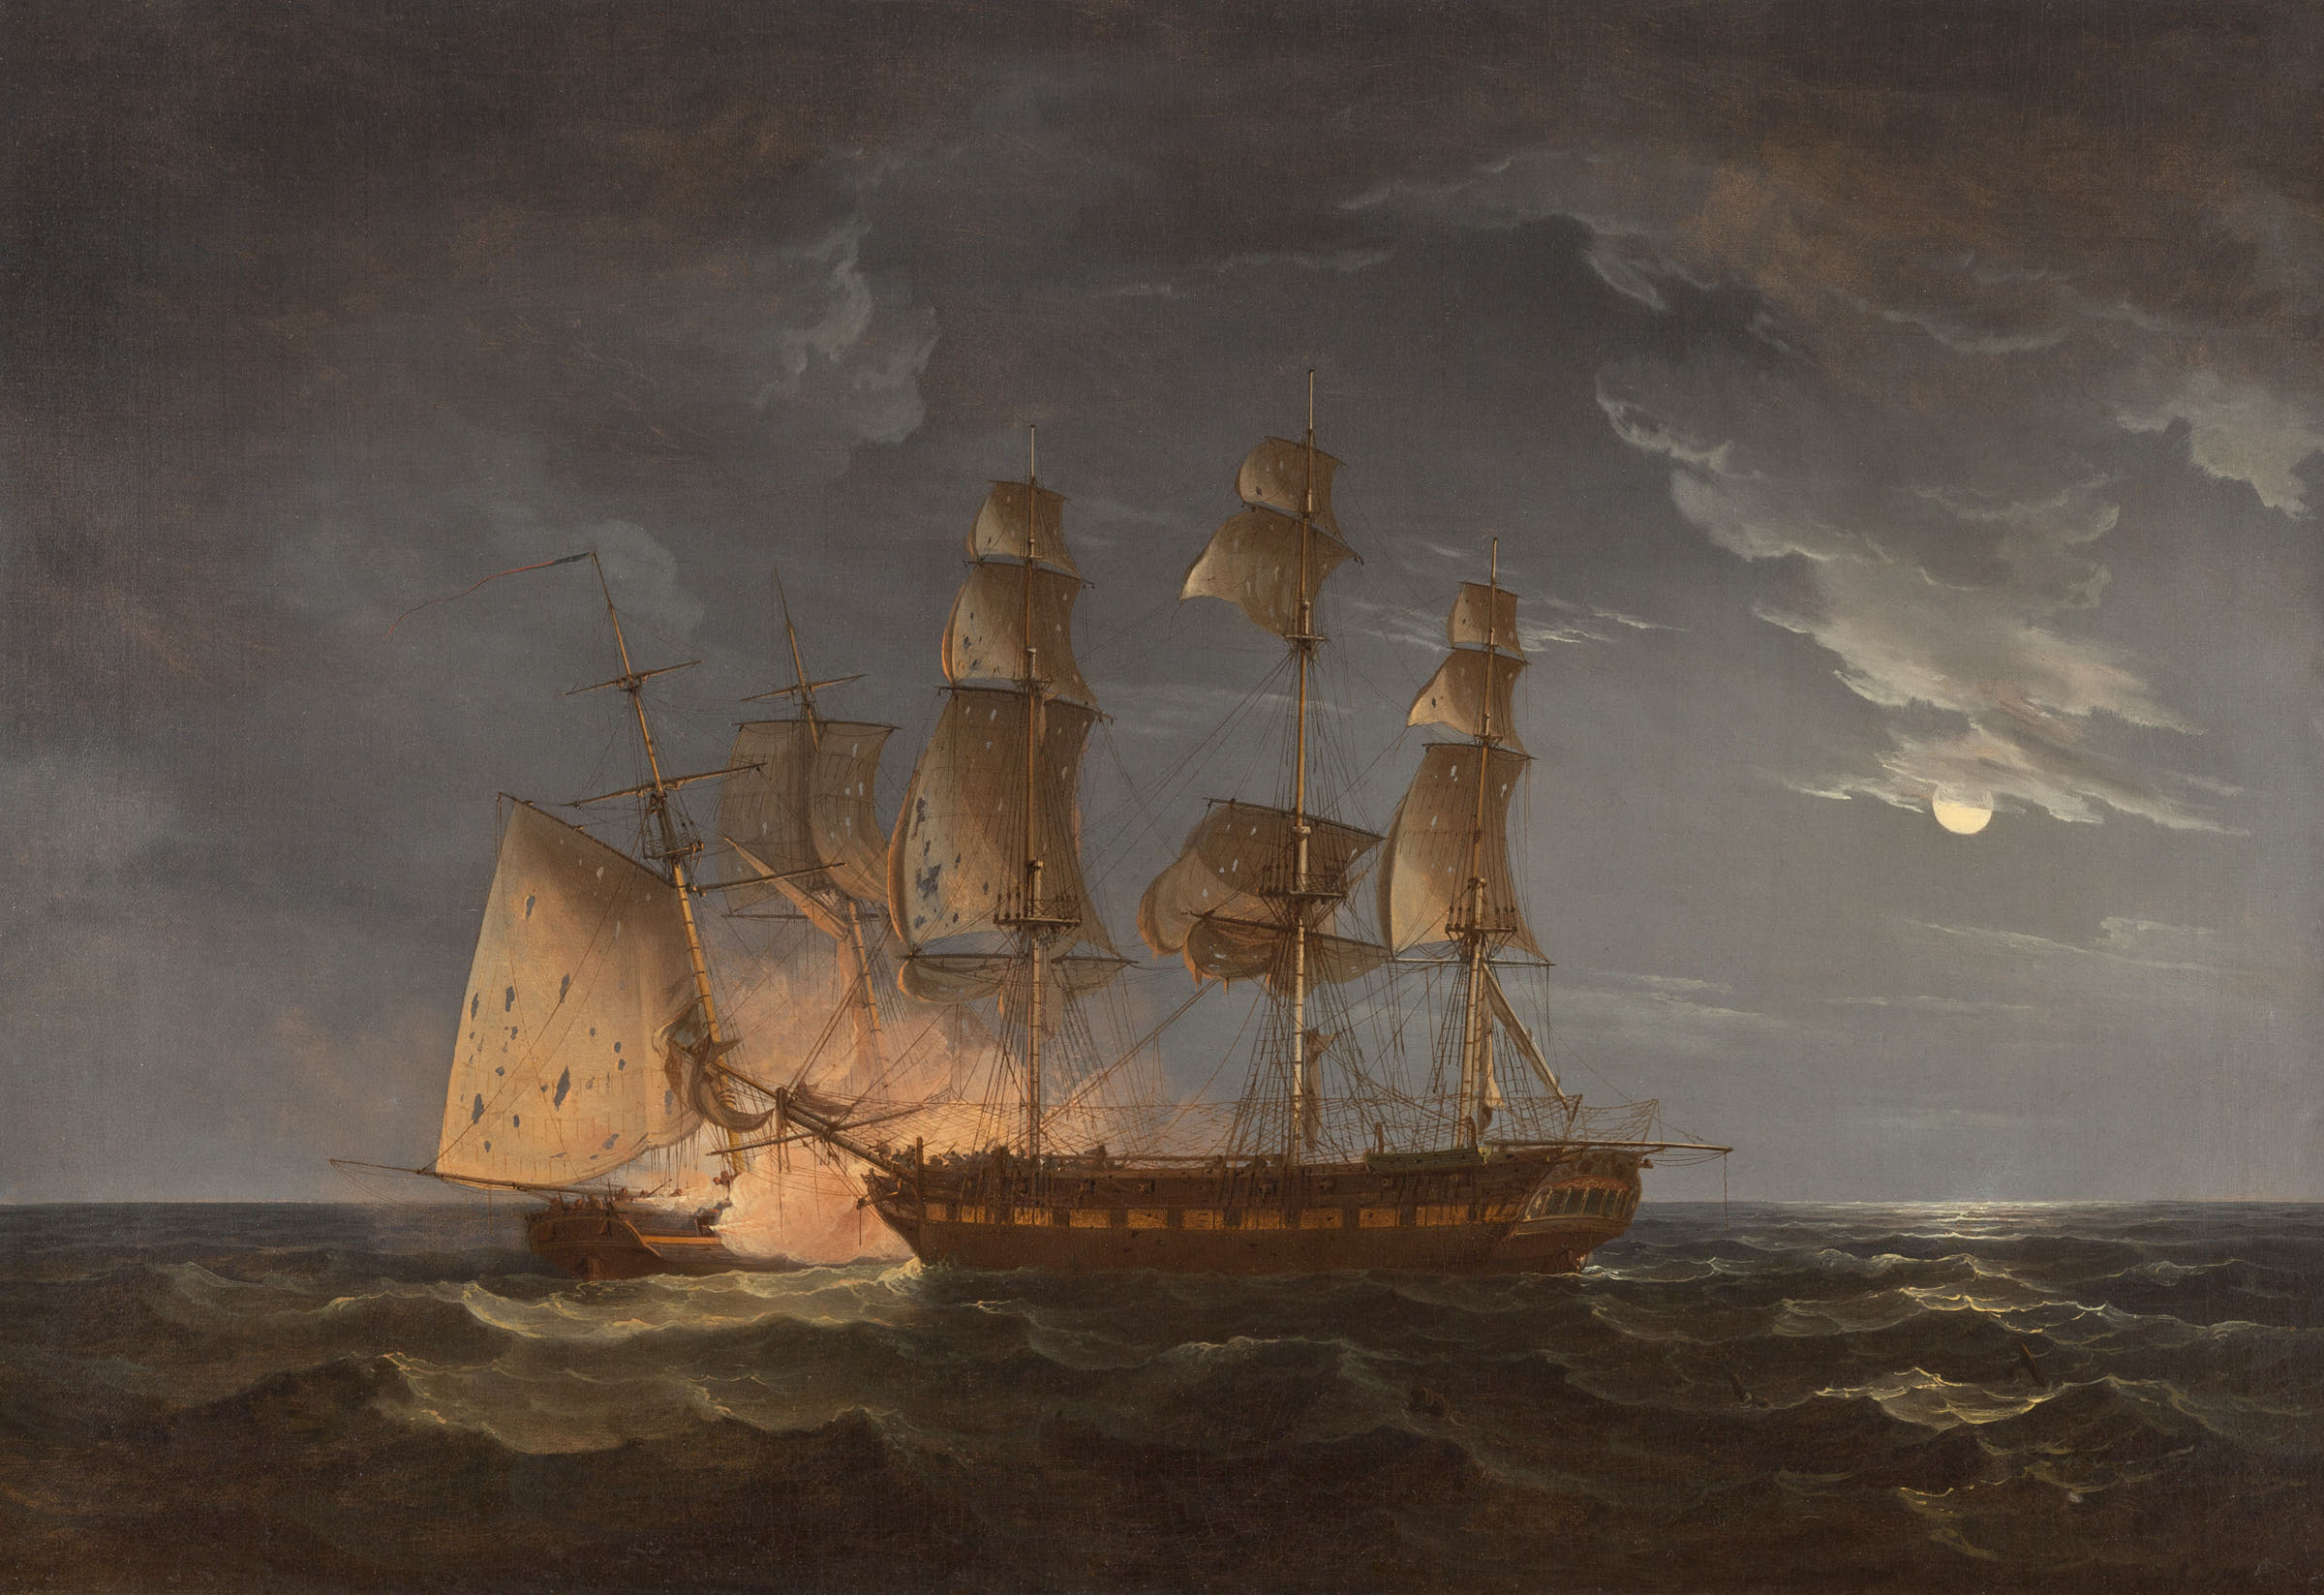 Thomas Whitcombe (British, ca. 1752/63-ca. 1824). 12 at Midnight; The Hibernia Attempting to Run the Comet Down, 1814. Oil on canvas. 31 1/2 x 21 1/2 in. (80 x 54.6 cm). Mr. and Mrs. Drew Peslar